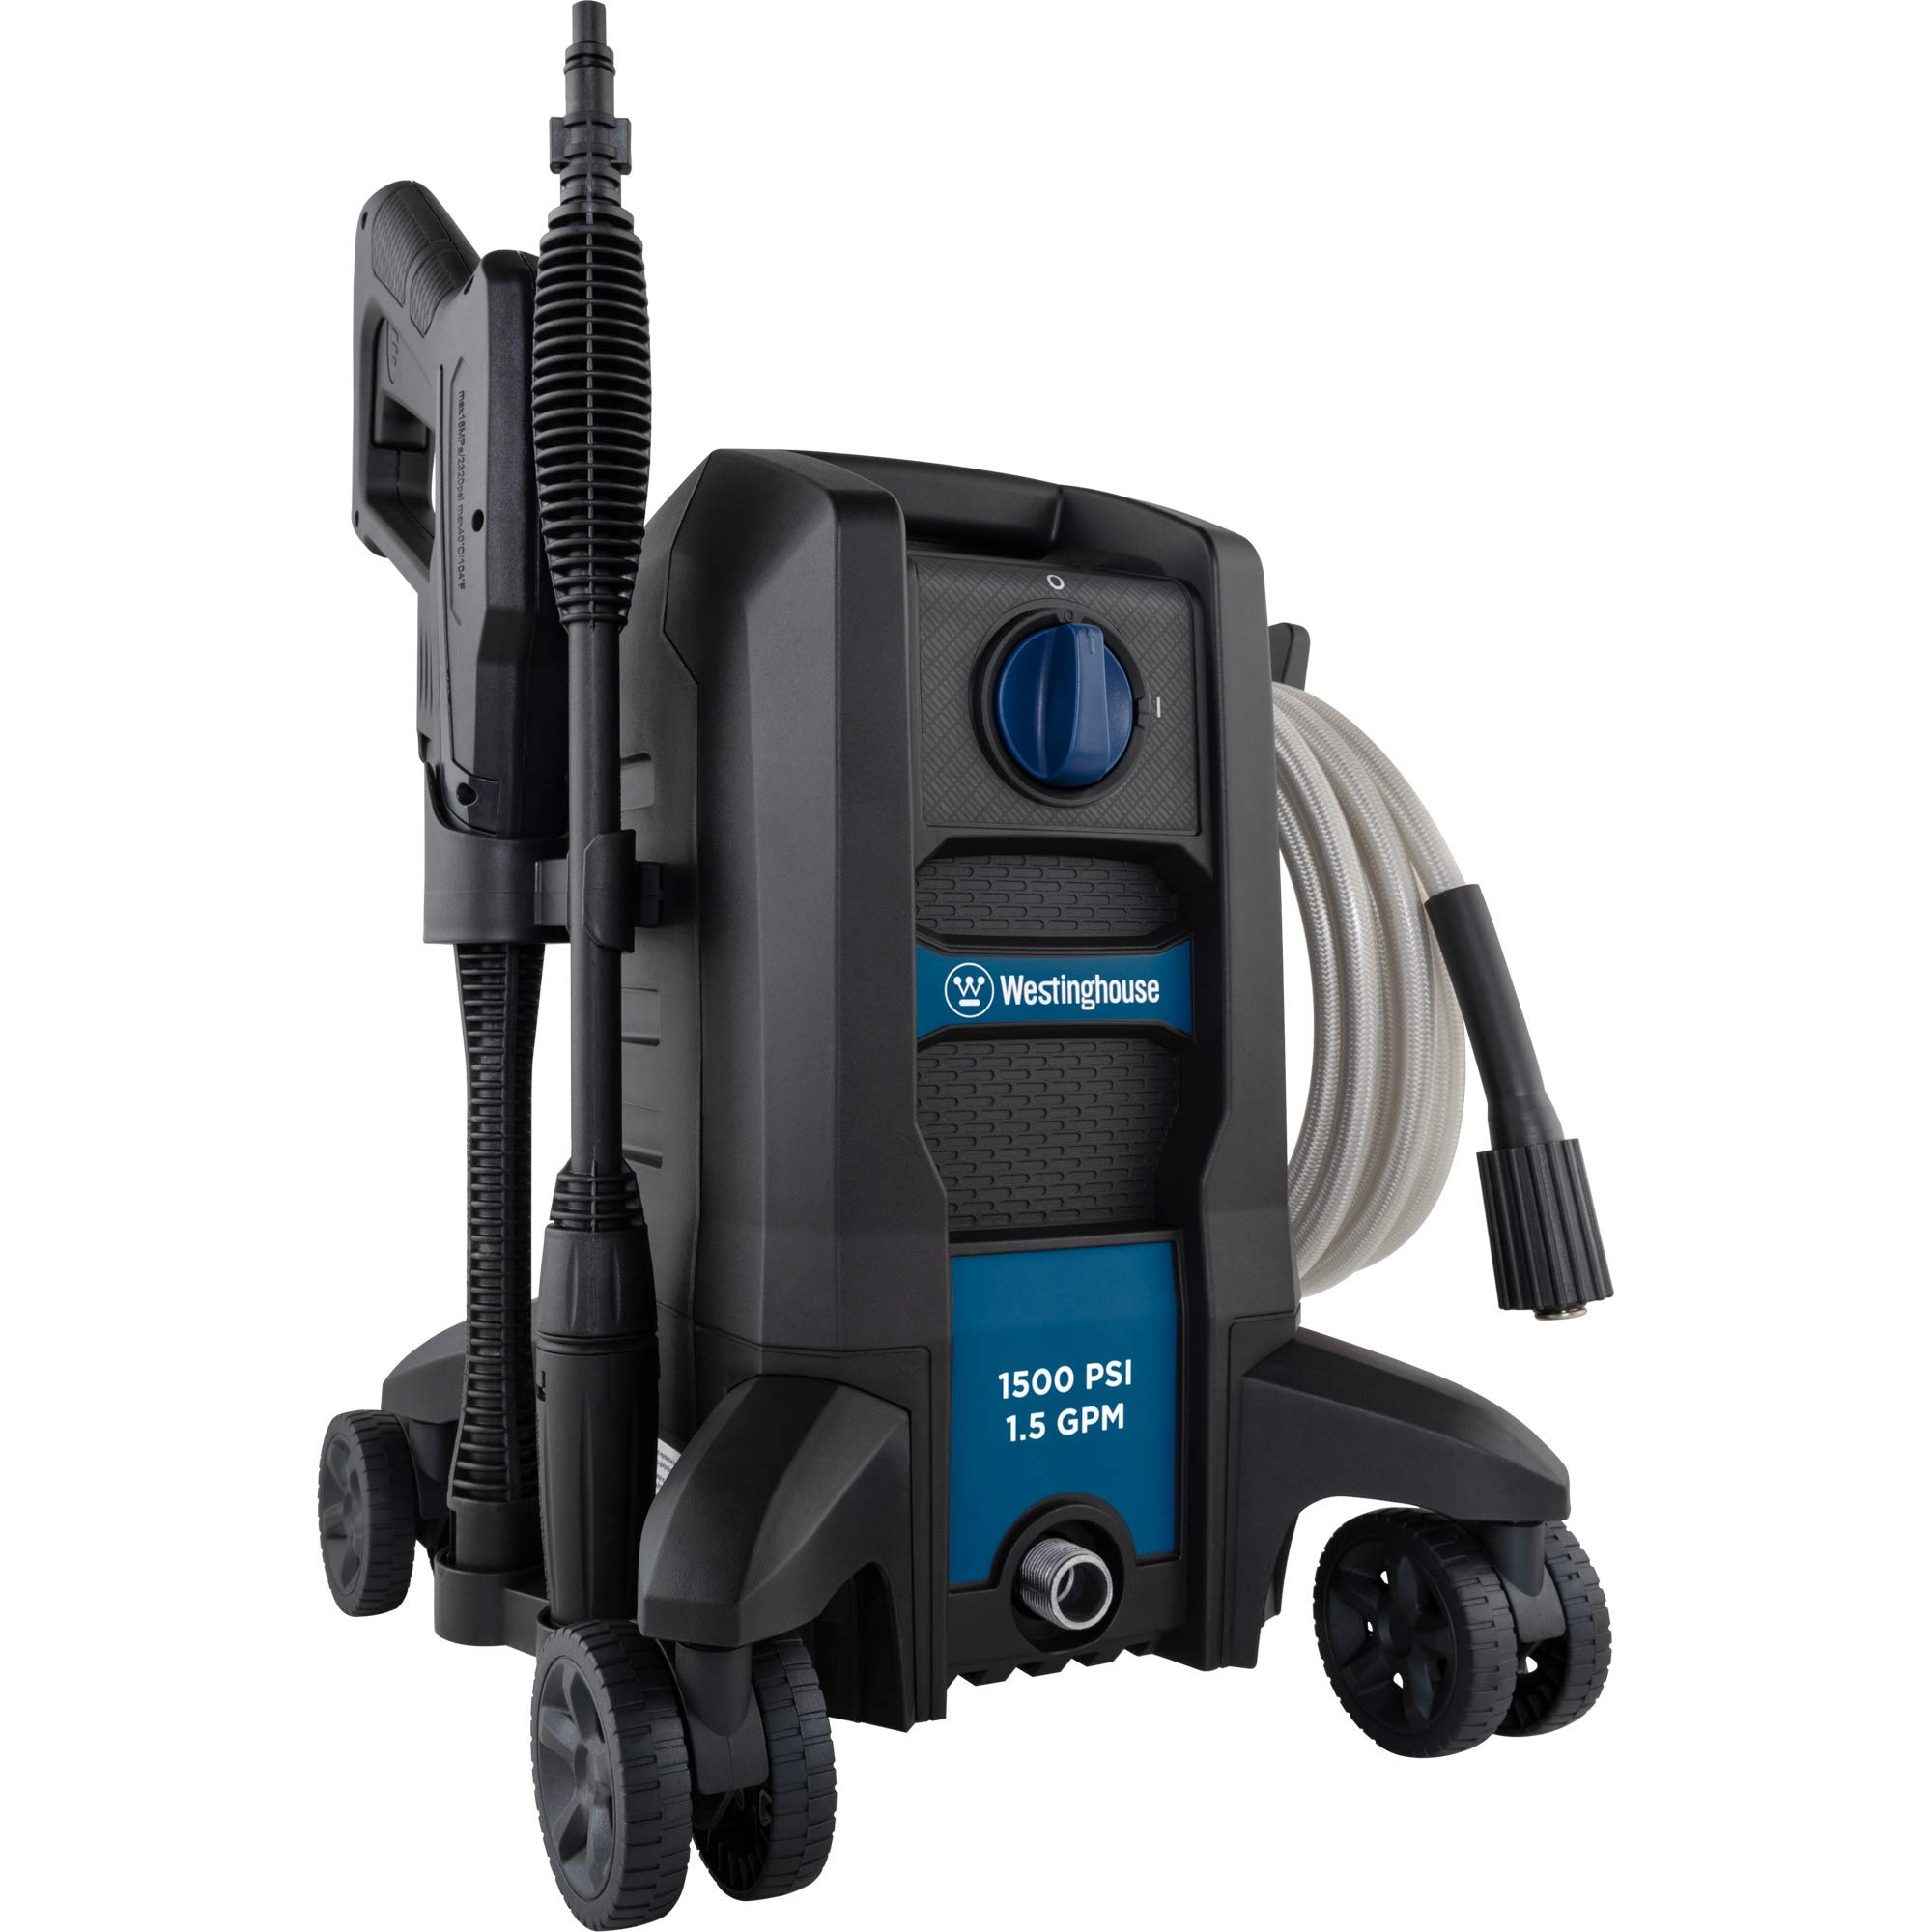 Westinghouse ePX2000 Electric Pressure Washer 1500 MAX PSI 1.5 Max GPM with Anti-Tipping Technology, Foam Cannon with Adjustable Spray